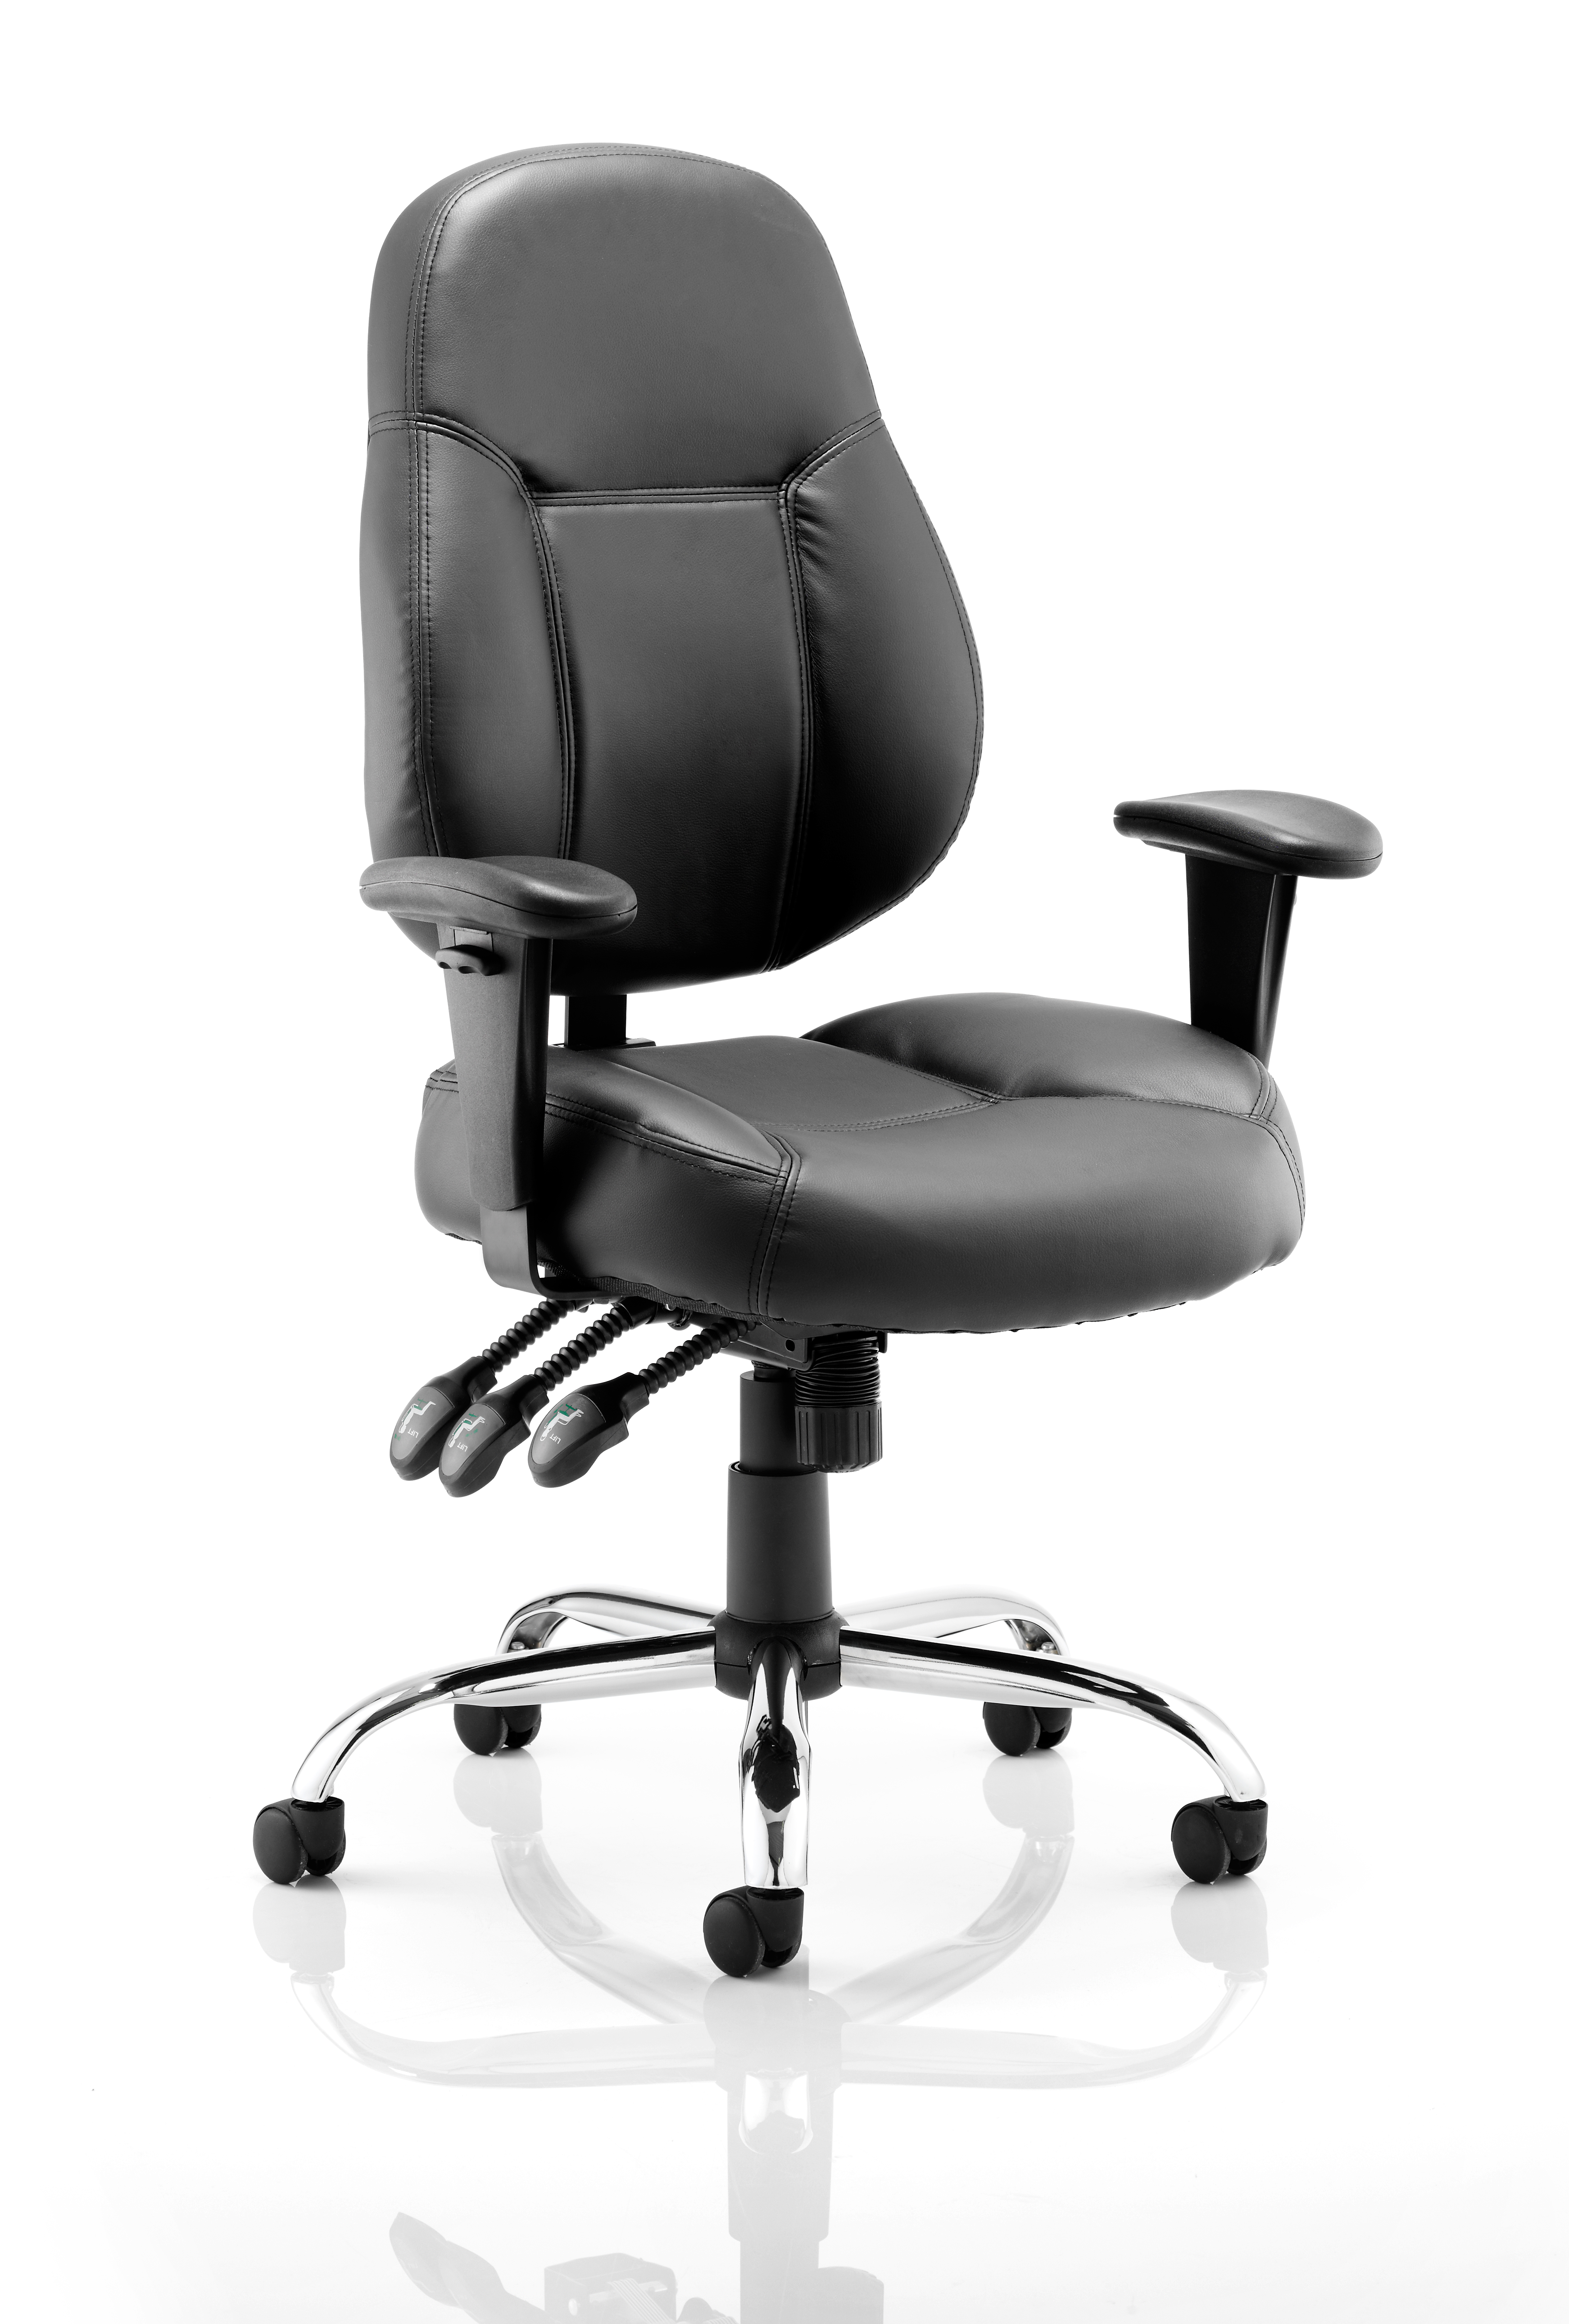 Desk Chairs Storm Chair Black Soft Bonded Leather With Arms OP000129